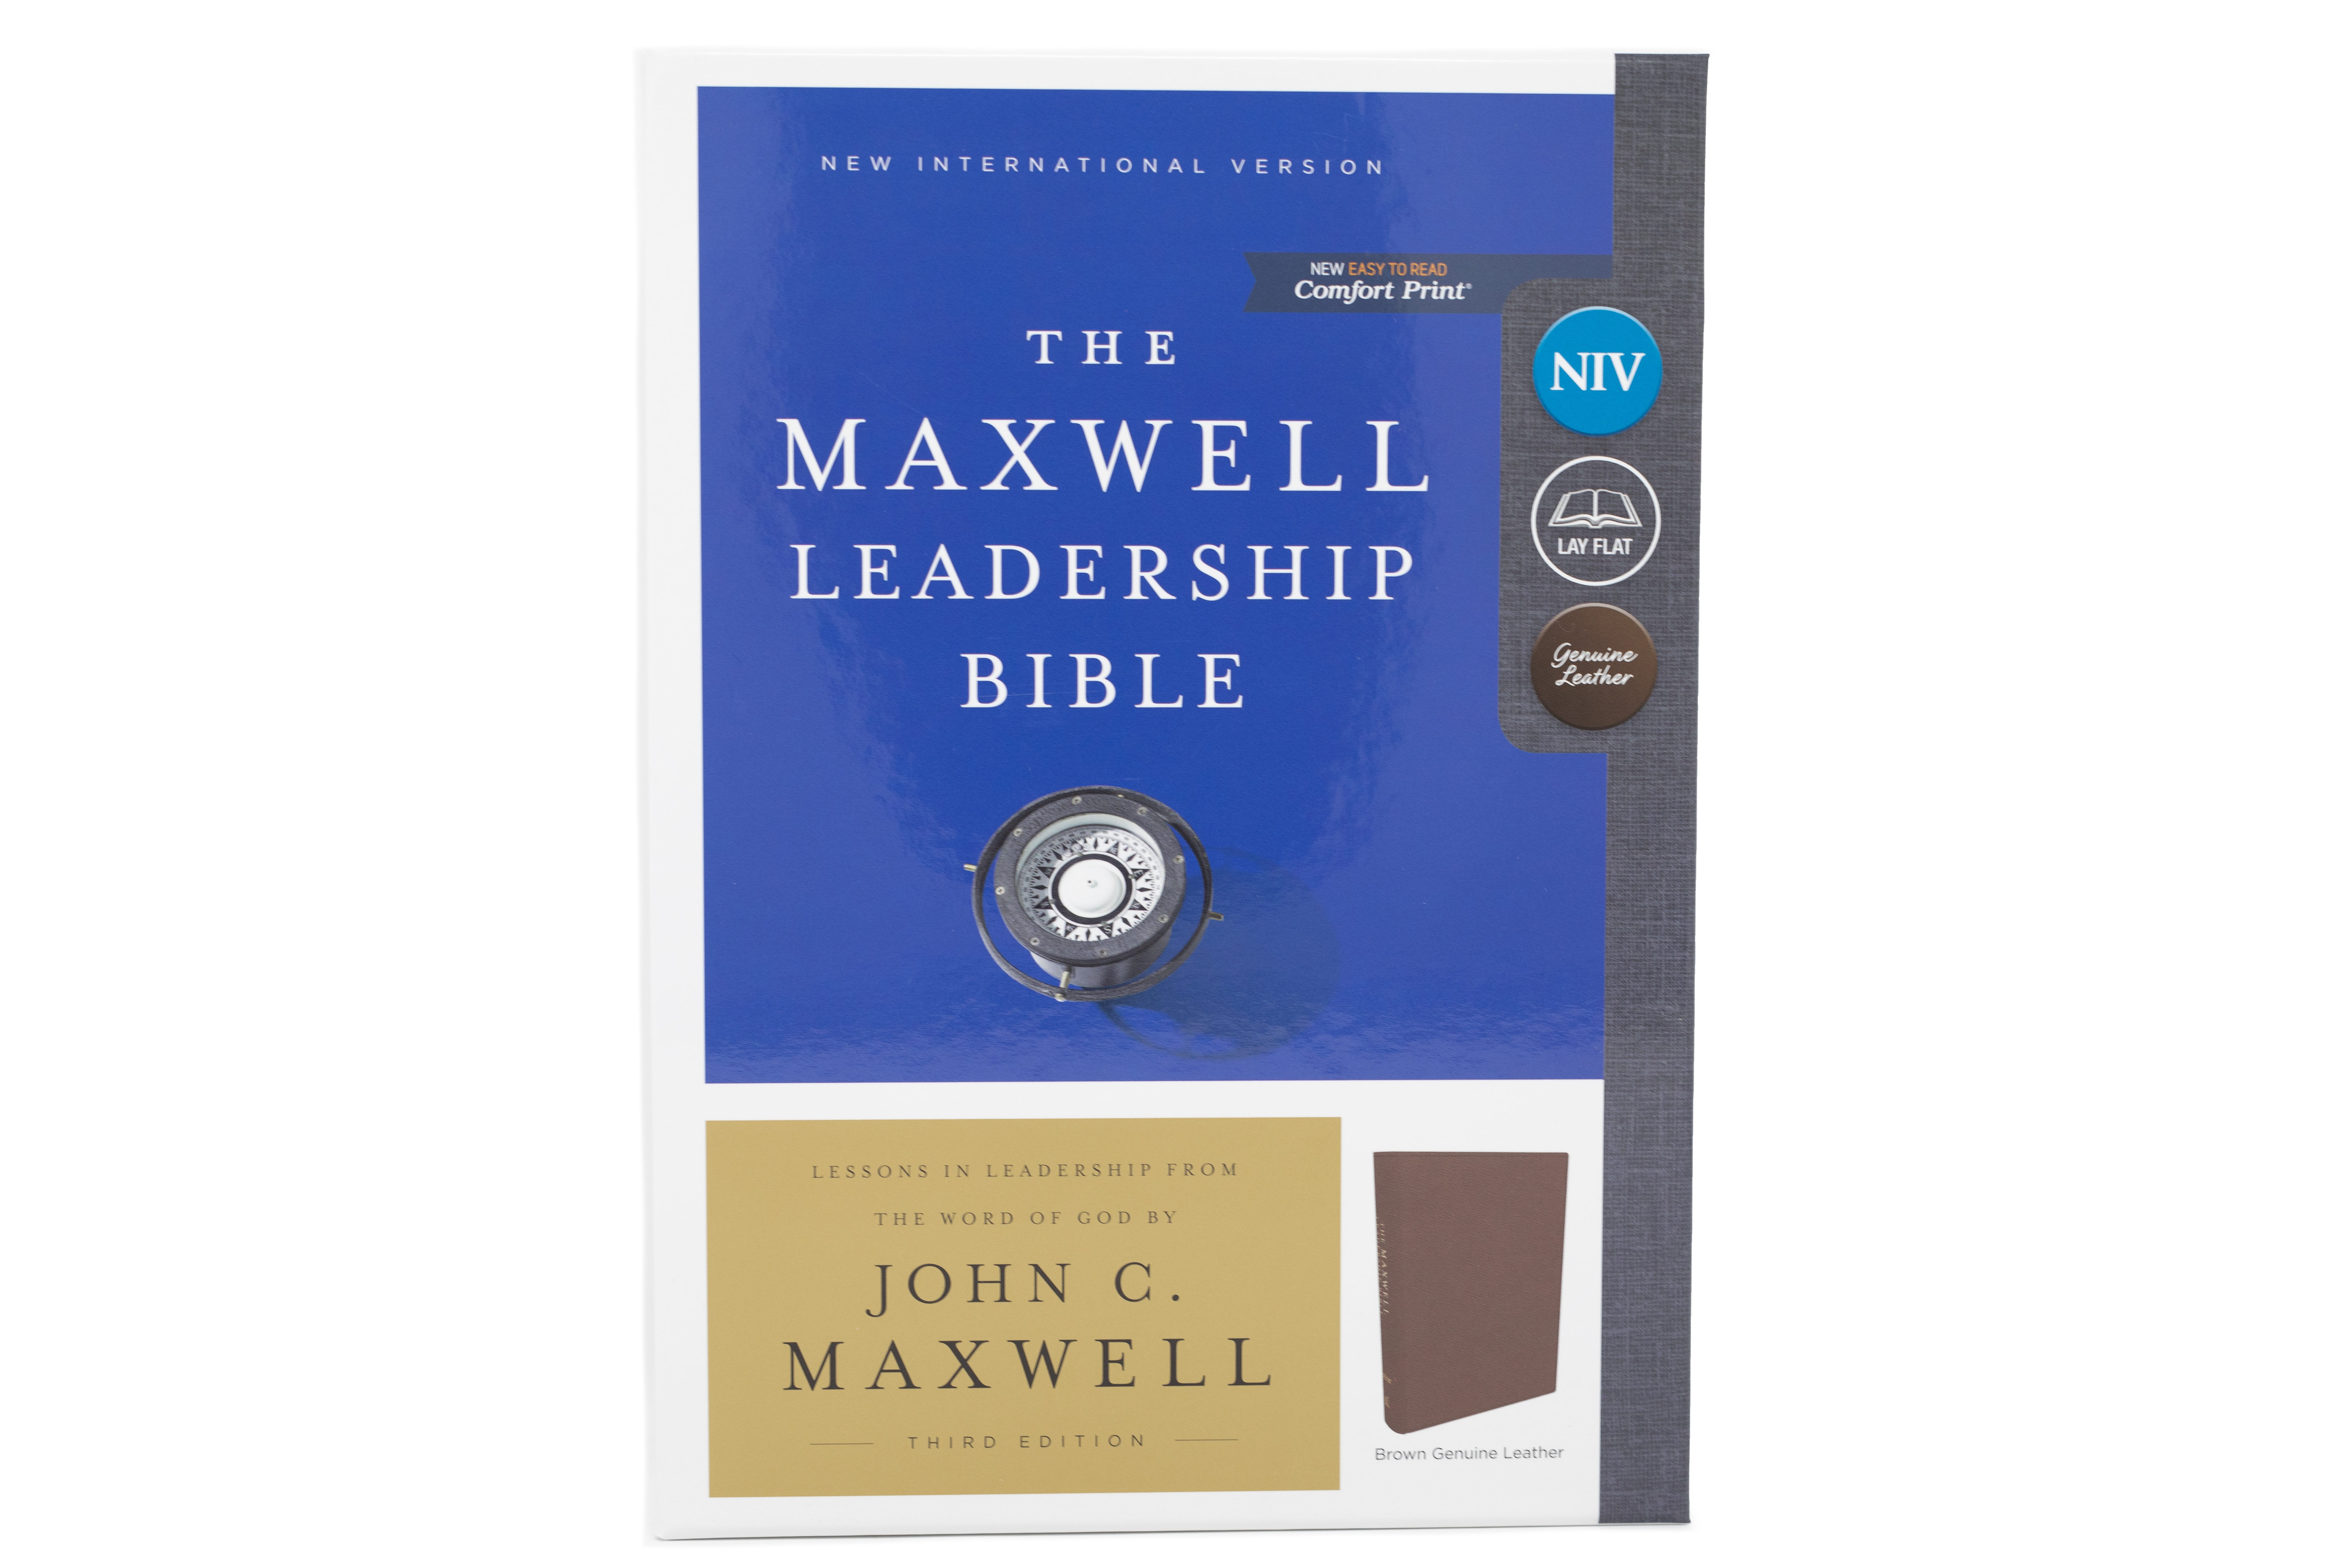 The Maxwell Leadership Bible - Brown Genuine Leather [NIV] - Third Edition